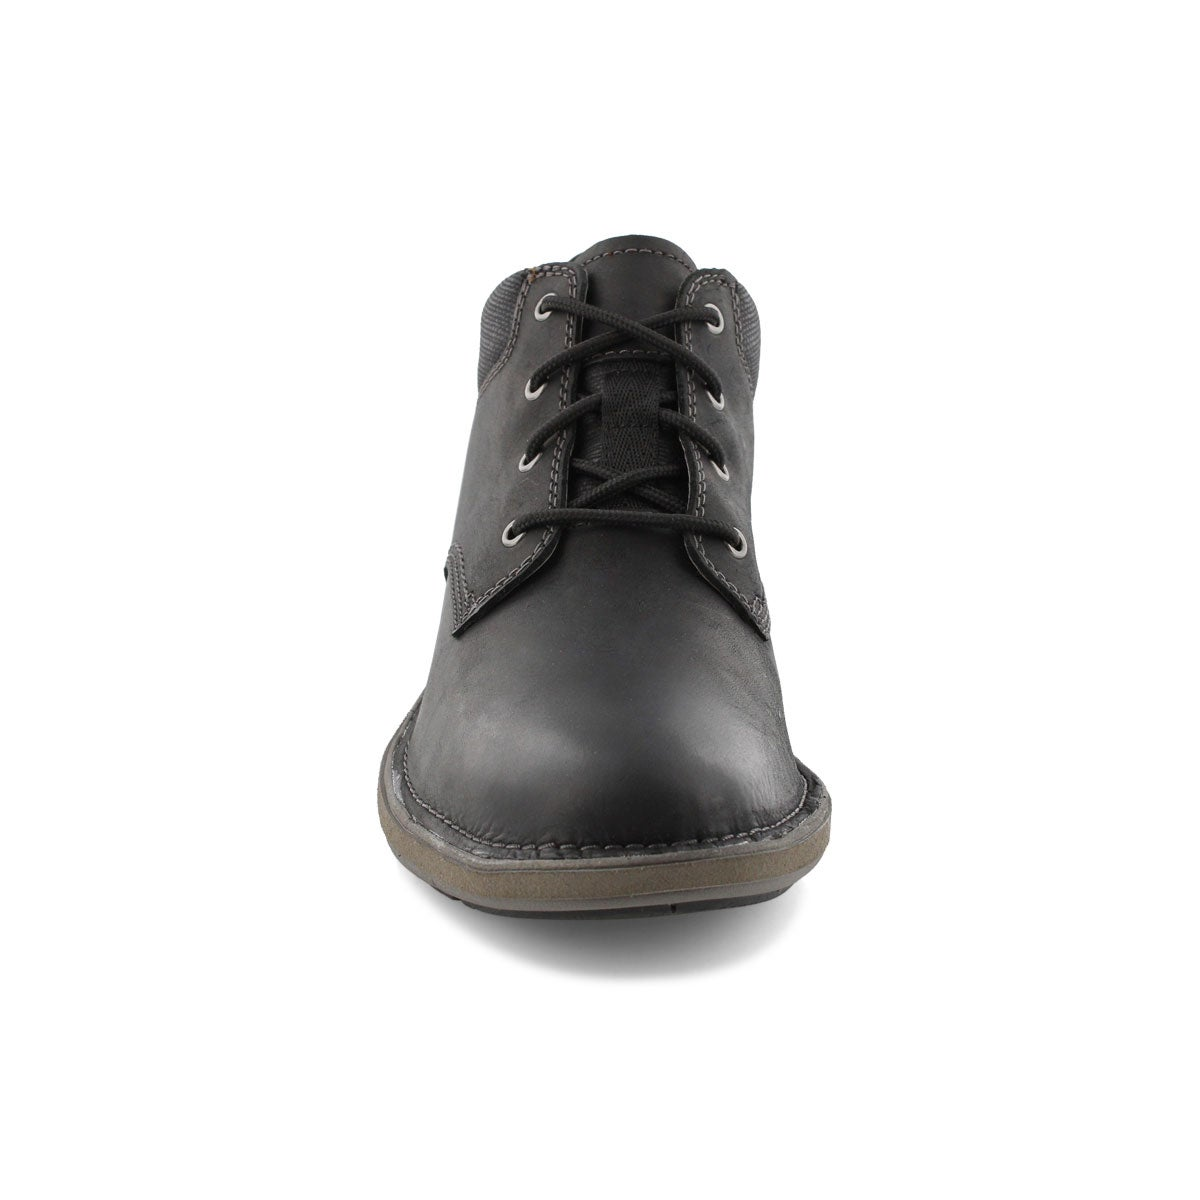 Mns UnLarvik Top black lace up boot